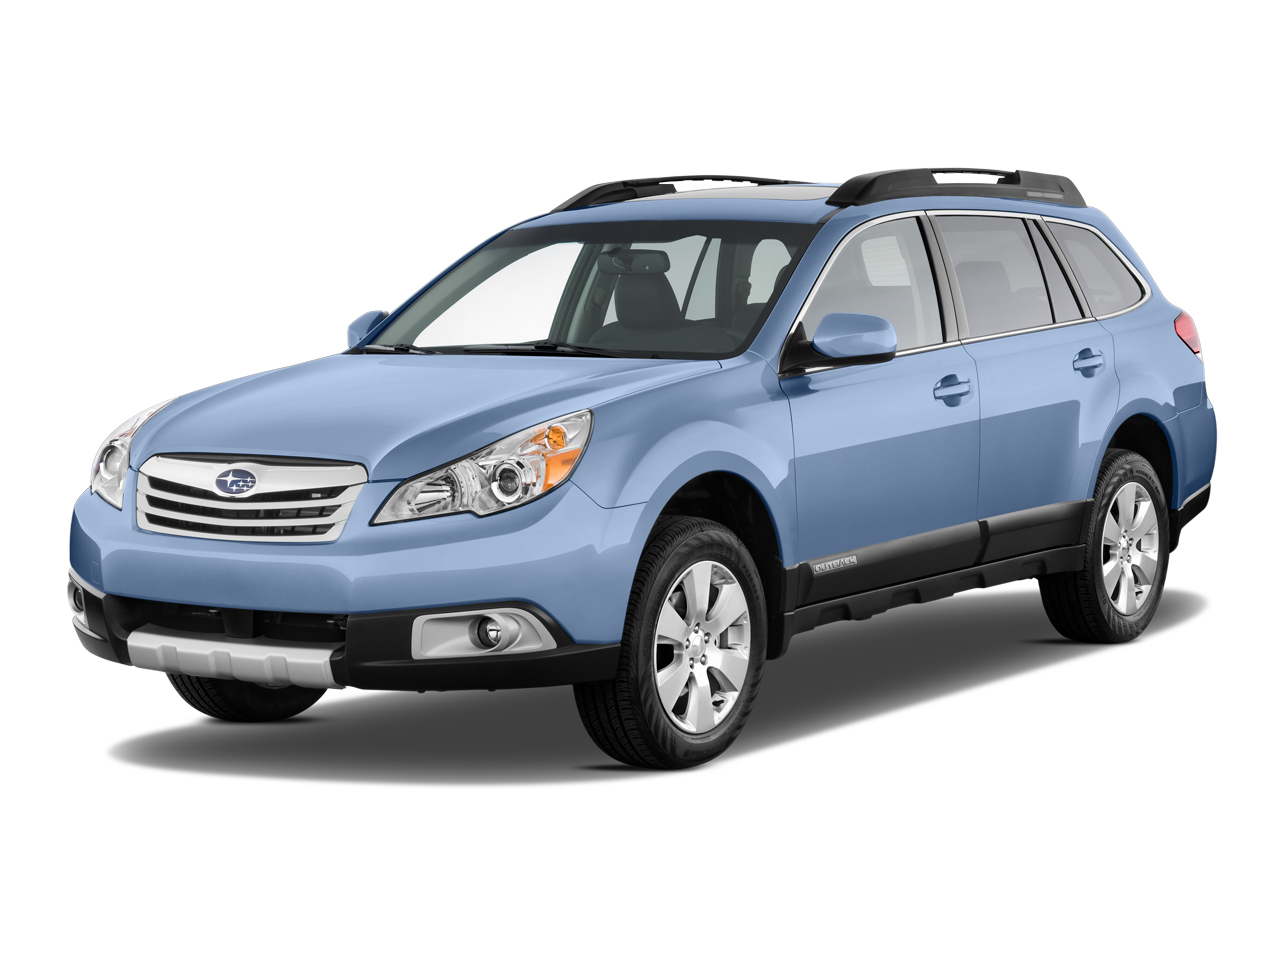 2011 subaru outback review ratings specs prices and photos the car connection. Black Bedroom Furniture Sets. Home Design Ideas